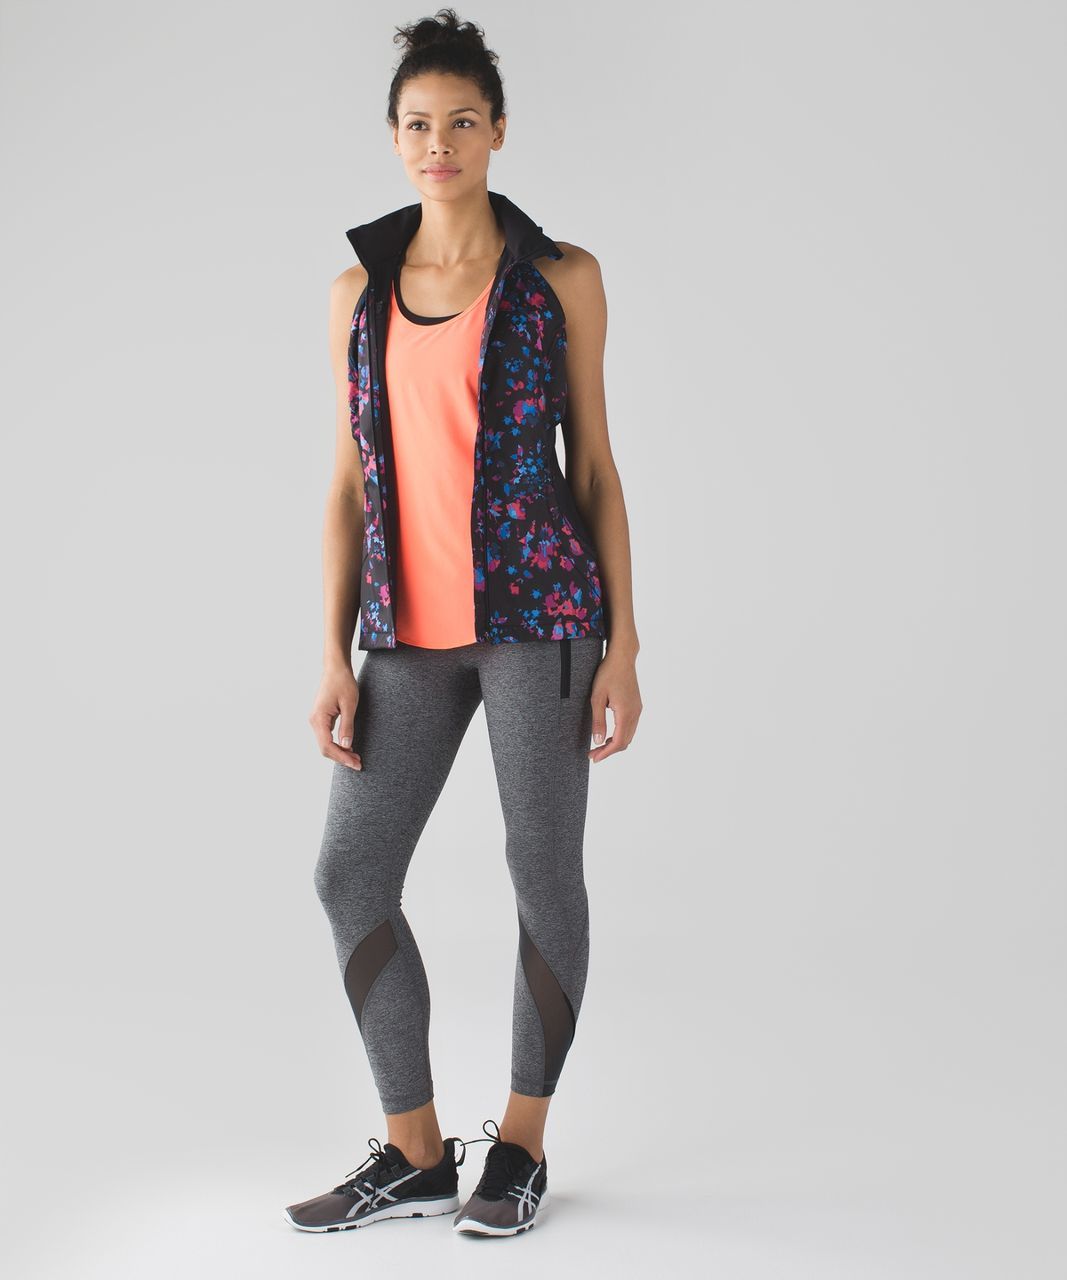 Lululemon Inspire Tight II (Mesh) - Heathered Black / Very Light Flare / Deep Coal